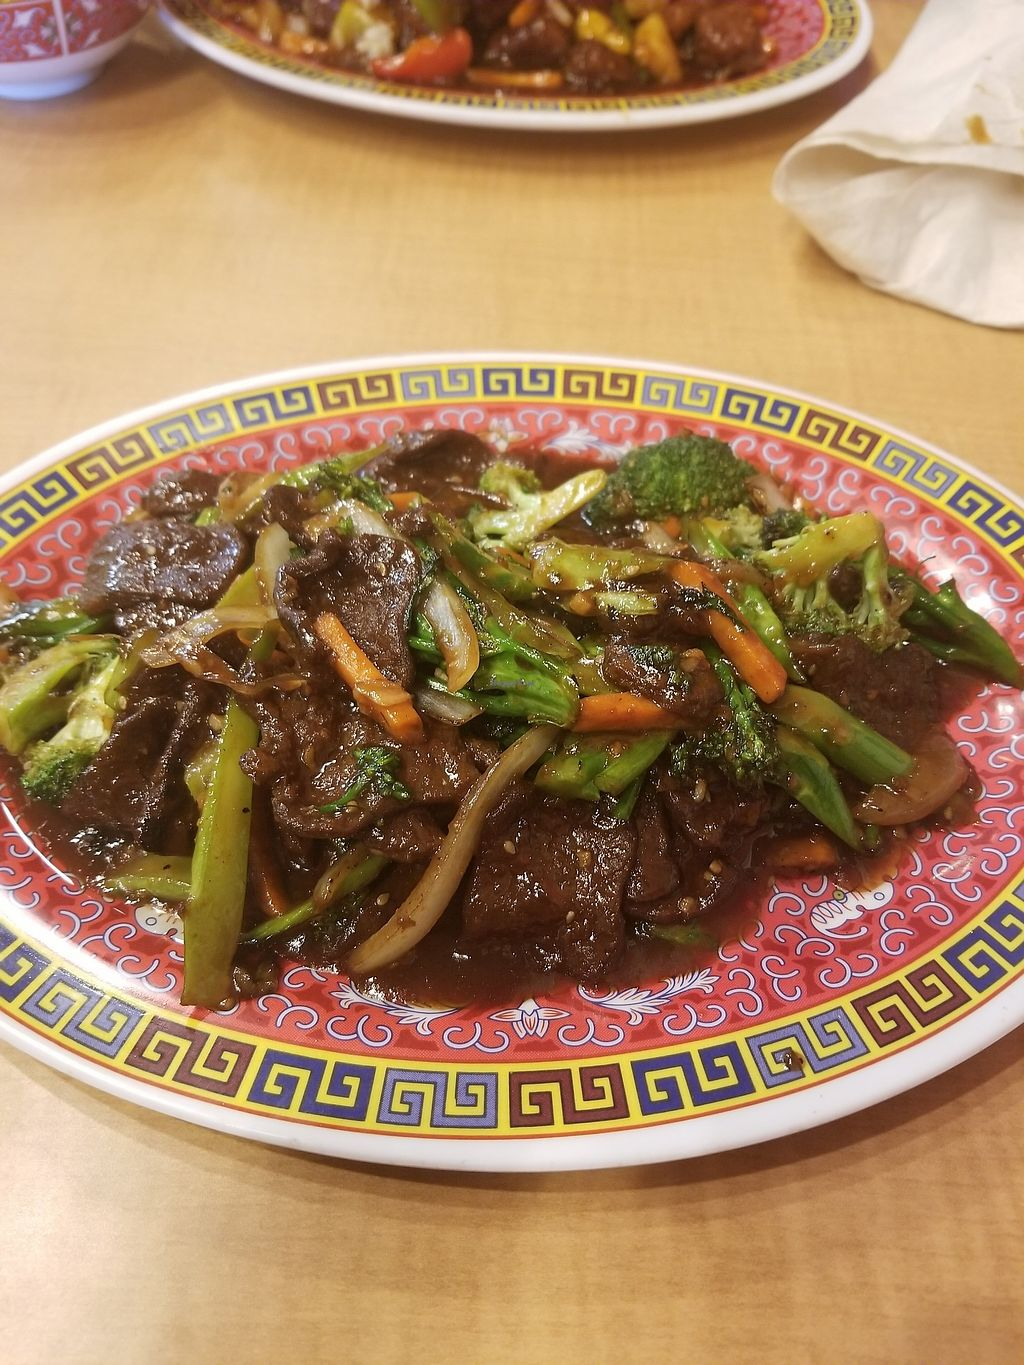 """Photo of Bok Choy  by <a href=""""/members/profile/Lamaha"""">Lamaha</a> <br/>Beef with Broccoli (Vegan!) <br/> October 1, 2017  - <a href='/contact/abuse/image/73958/310661'>Report</a>"""